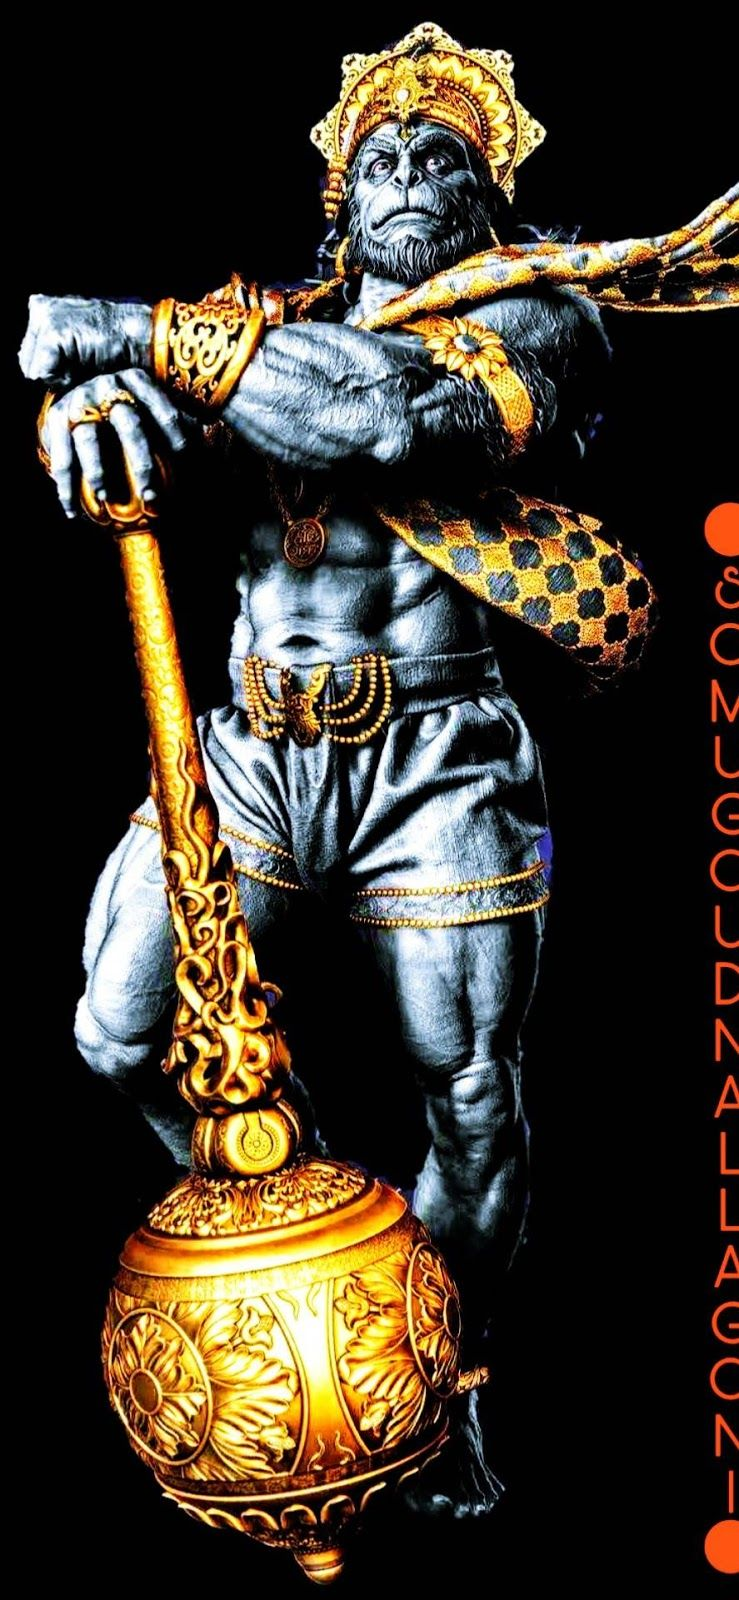 60 Lord Hanuman Full Hd Mobile Screen Wallpapers And Unknown Facts About Mahabali Hanuman You Must Know Lord Hanuman Hanuman Hanuman Wallpaper 1080p full hd full screen lord hanuman